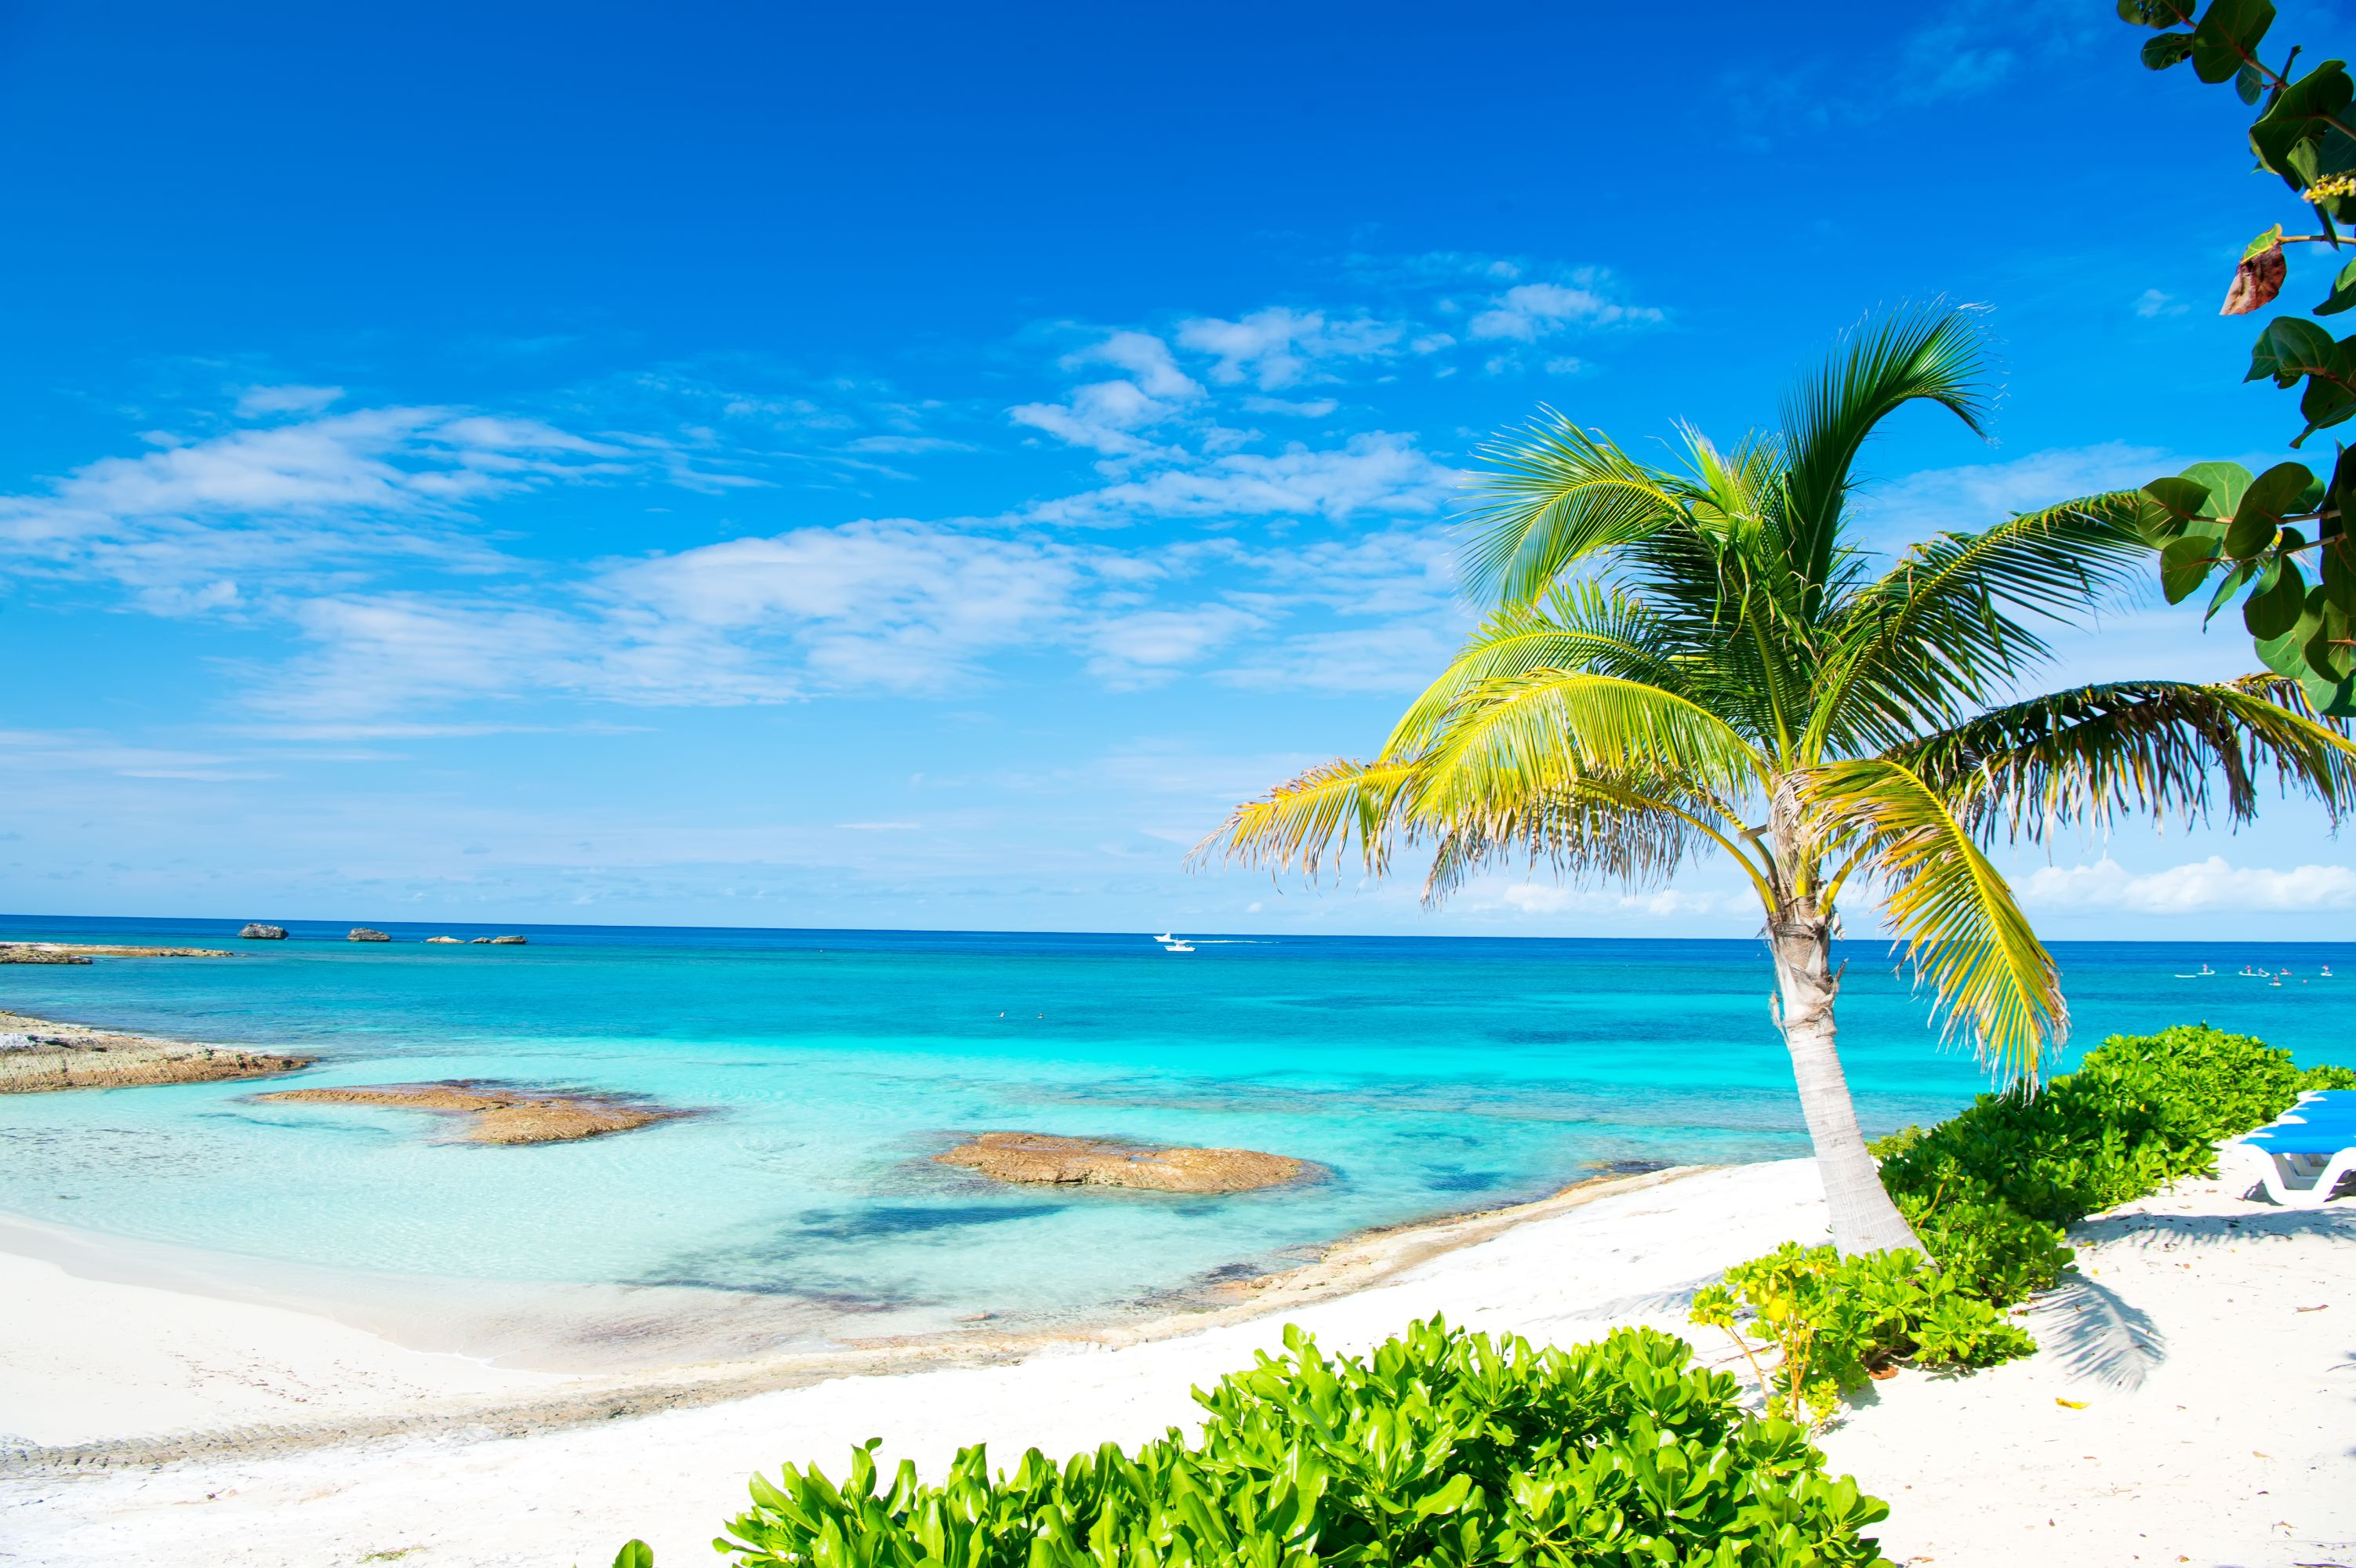 bigstock-Palm-Tree-Blue-Sea-Sky-In-Gr-229845730